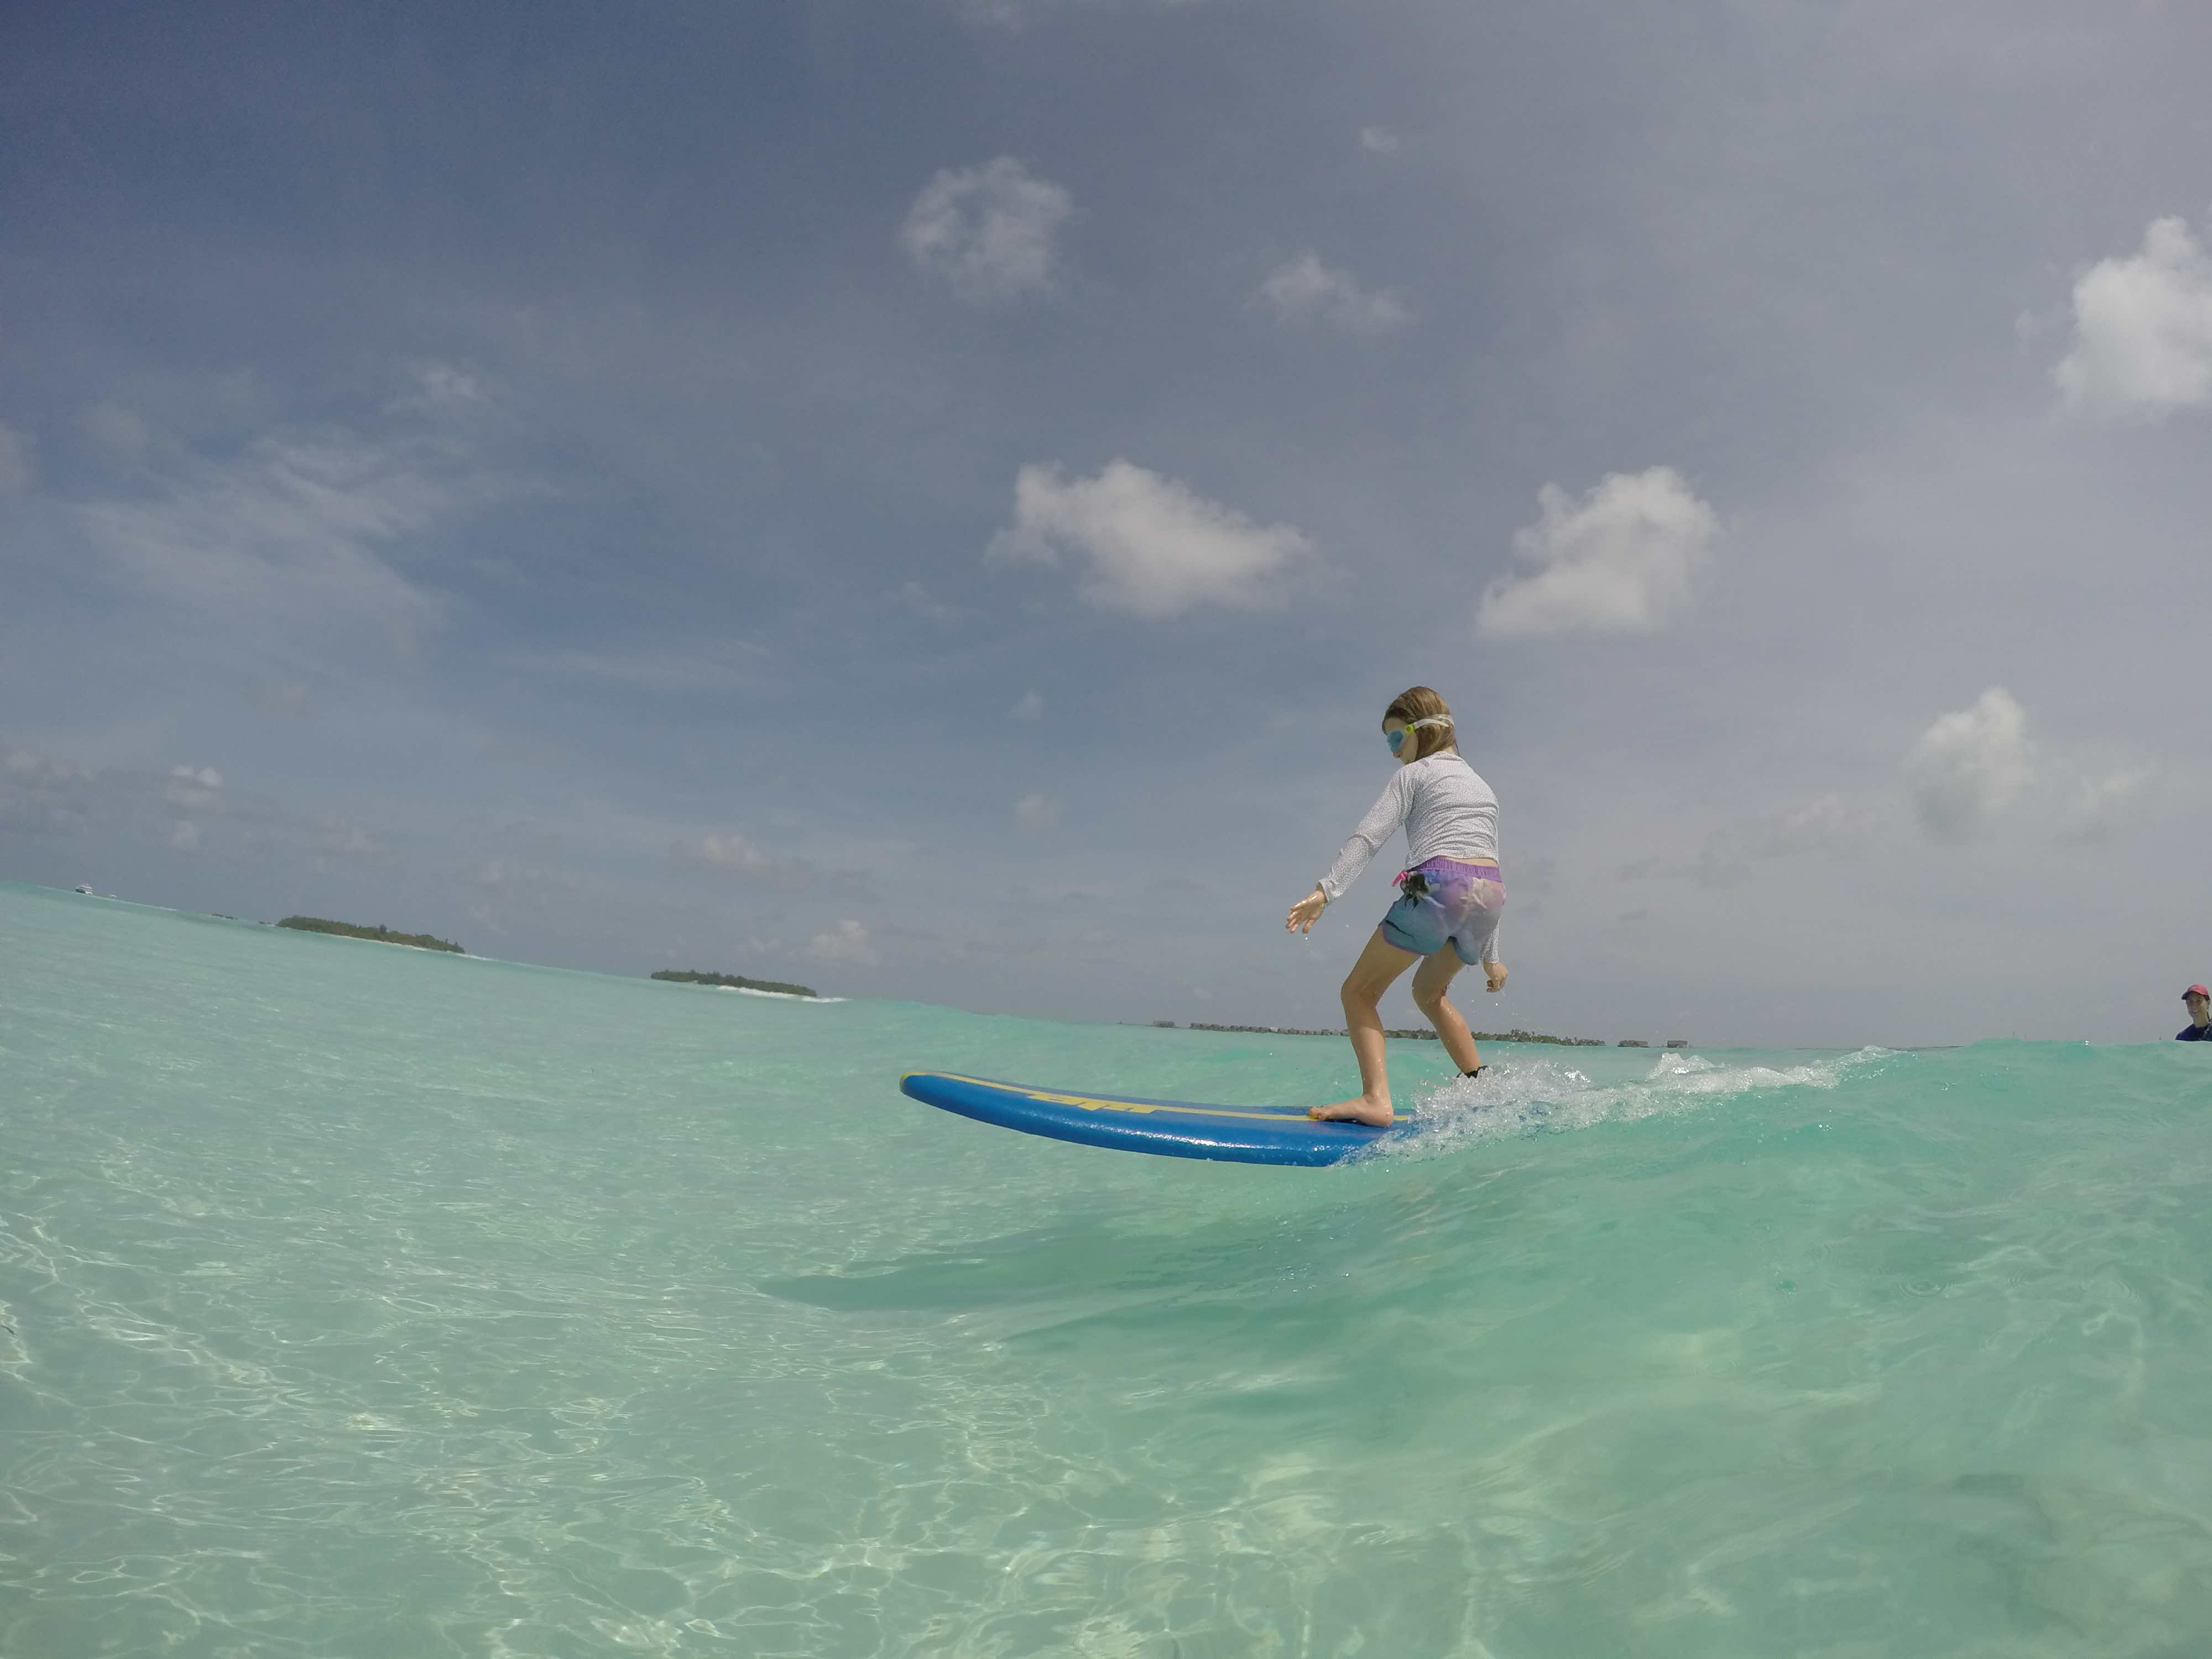 The learn to surf sandbar